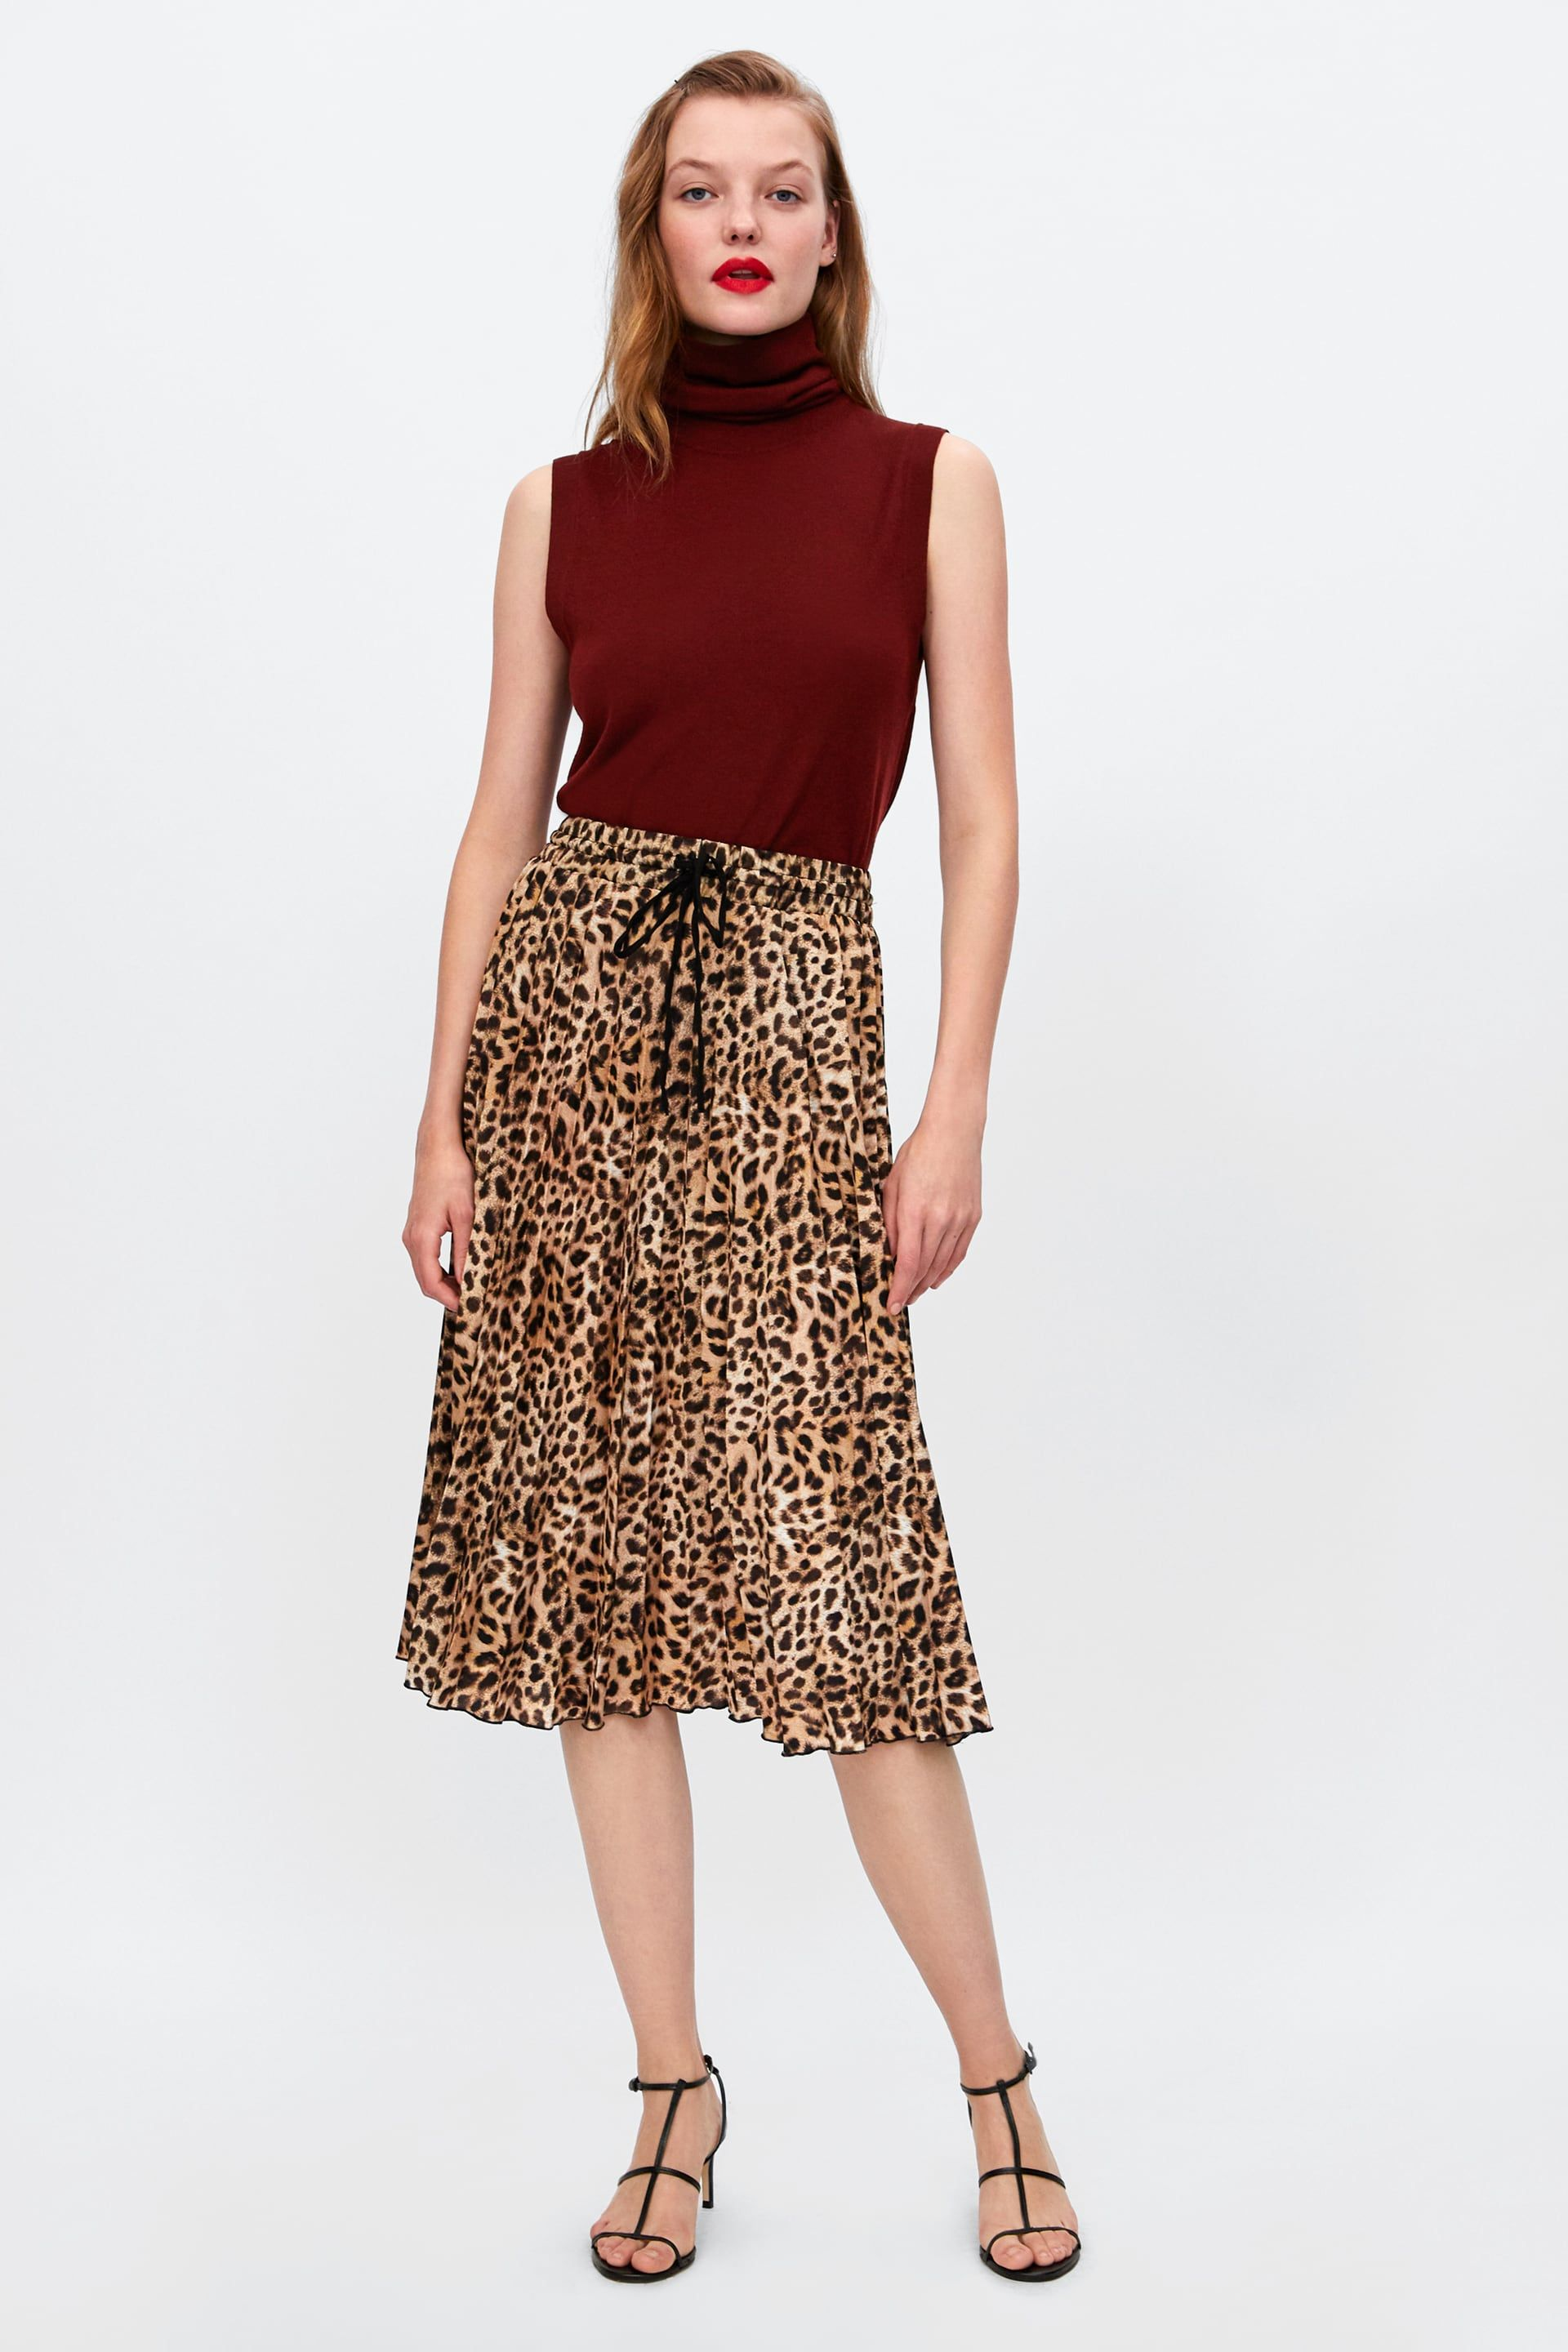 6719a8187a271 ZARA - WOMAN - ANIMAL PRINT SKIRT